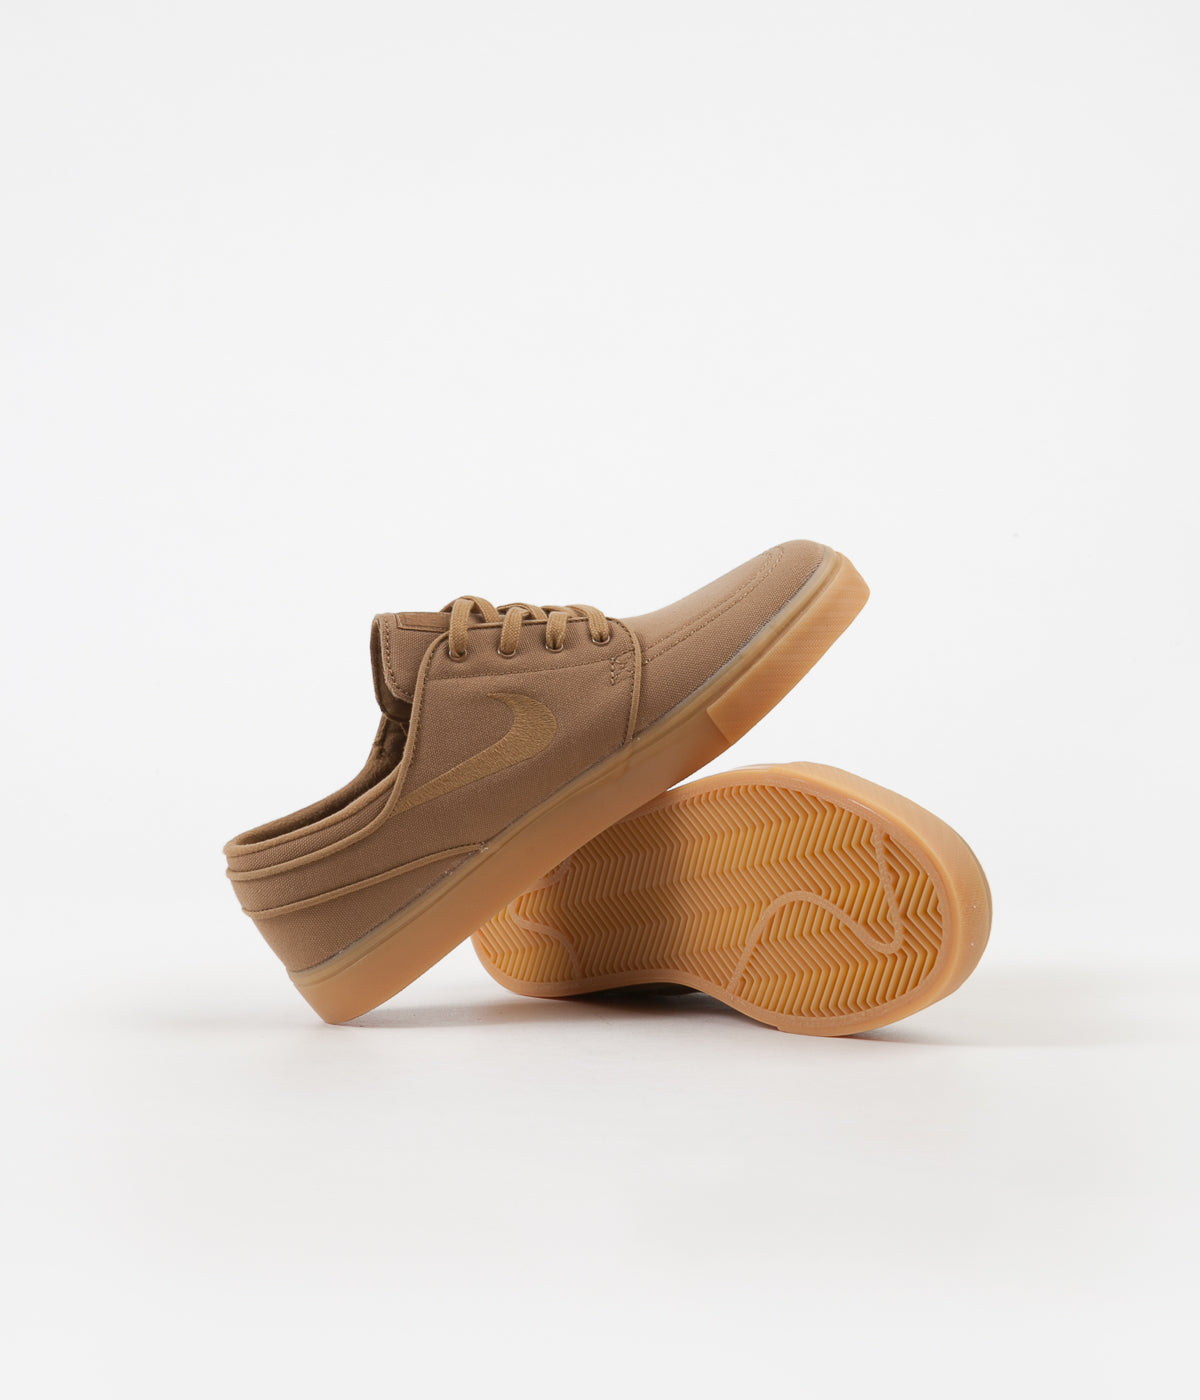 Nike SB Stefan Janoski Shoes - Golden Beige / Golden Beige - Gum Yellow